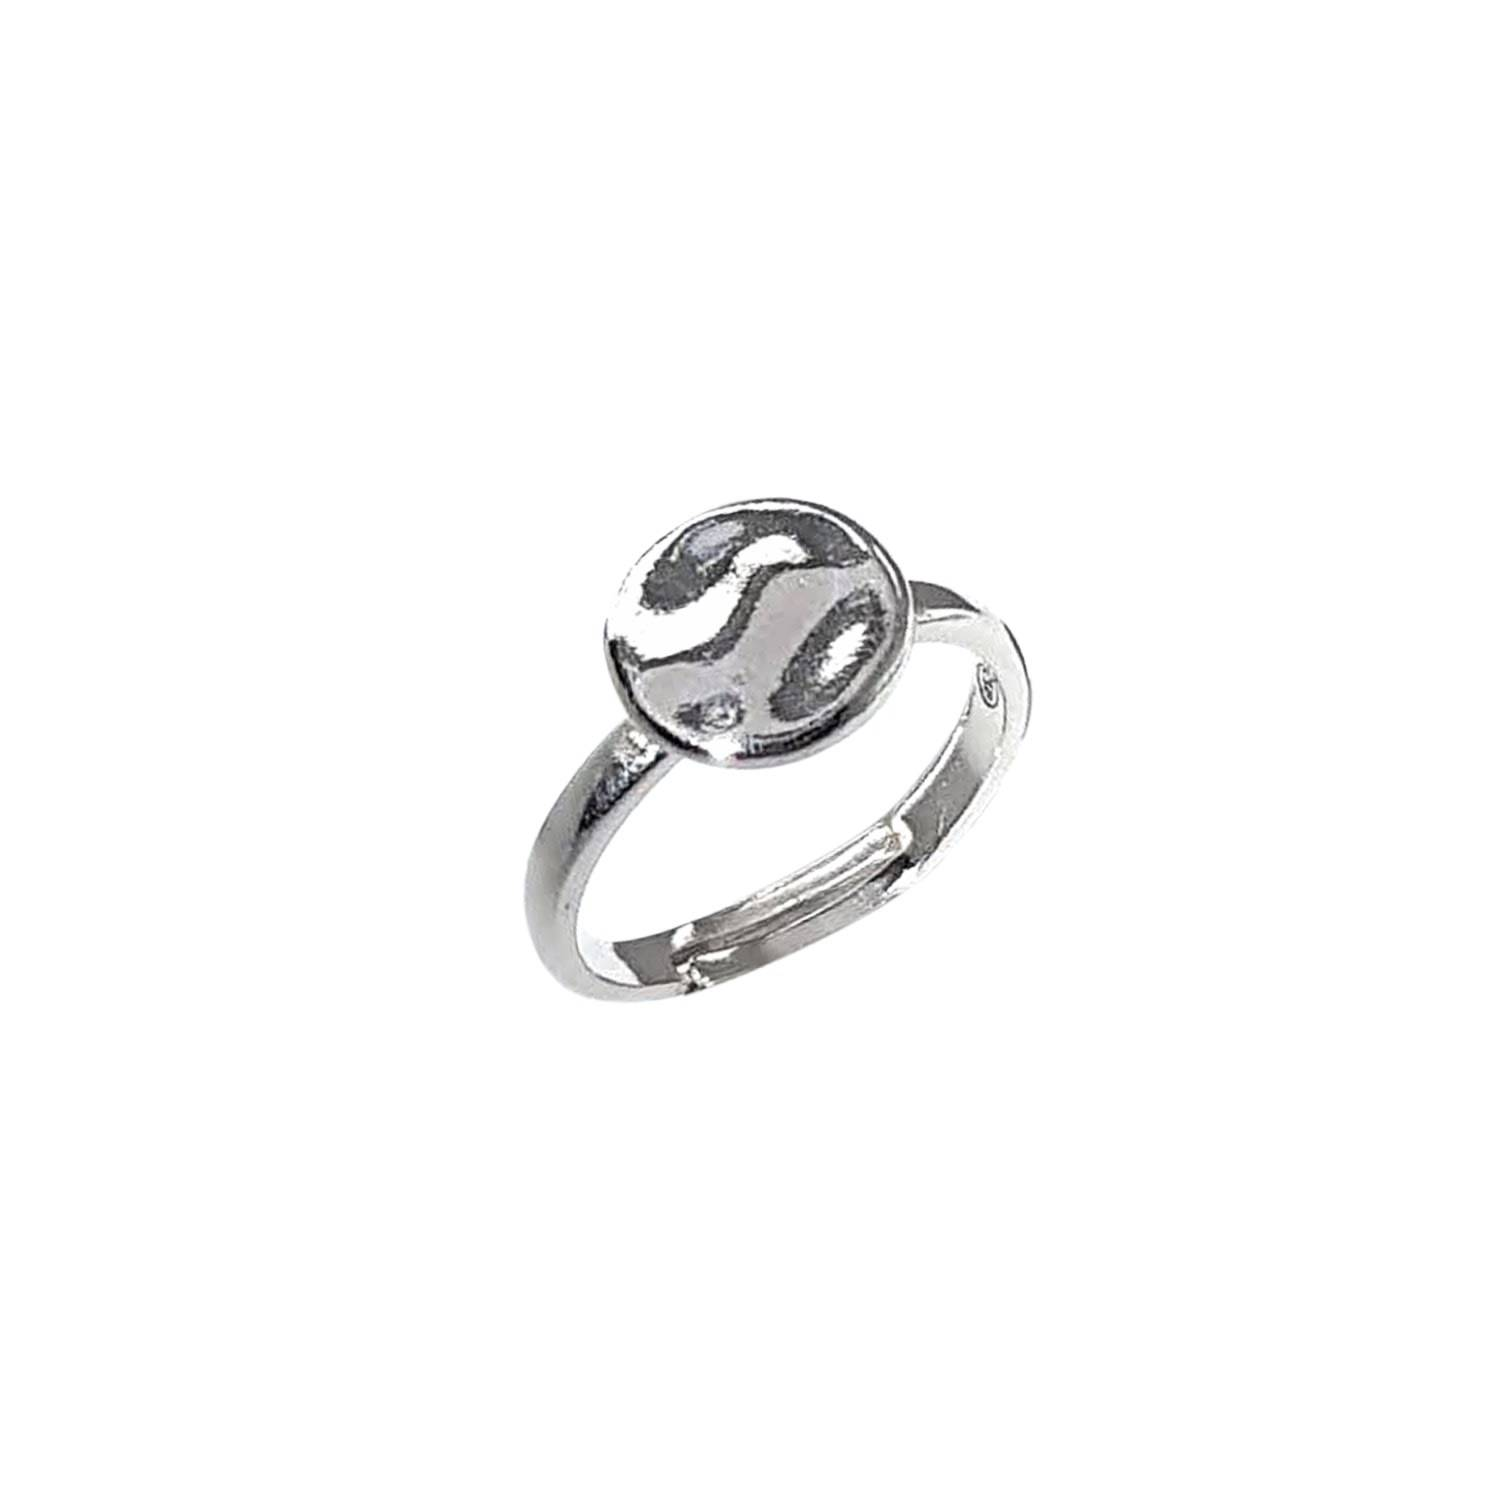 Lucy Ashton Jewellery - Hammered Disc Ring Sterling Silver